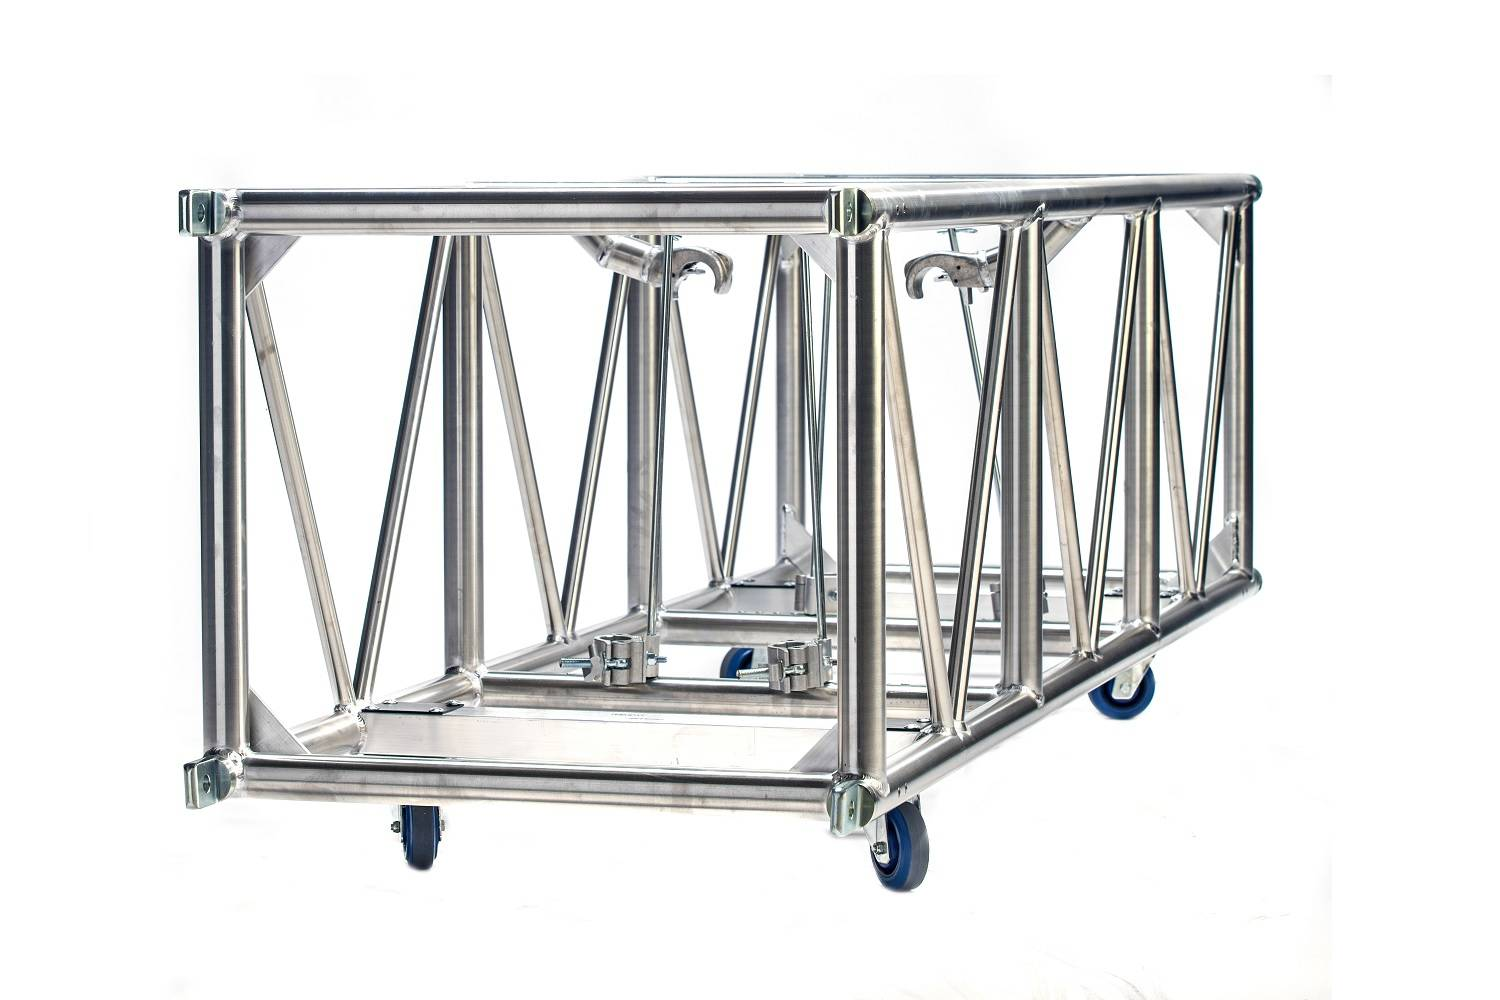 Double hung pre-rig truss 26 x 30 spigoted